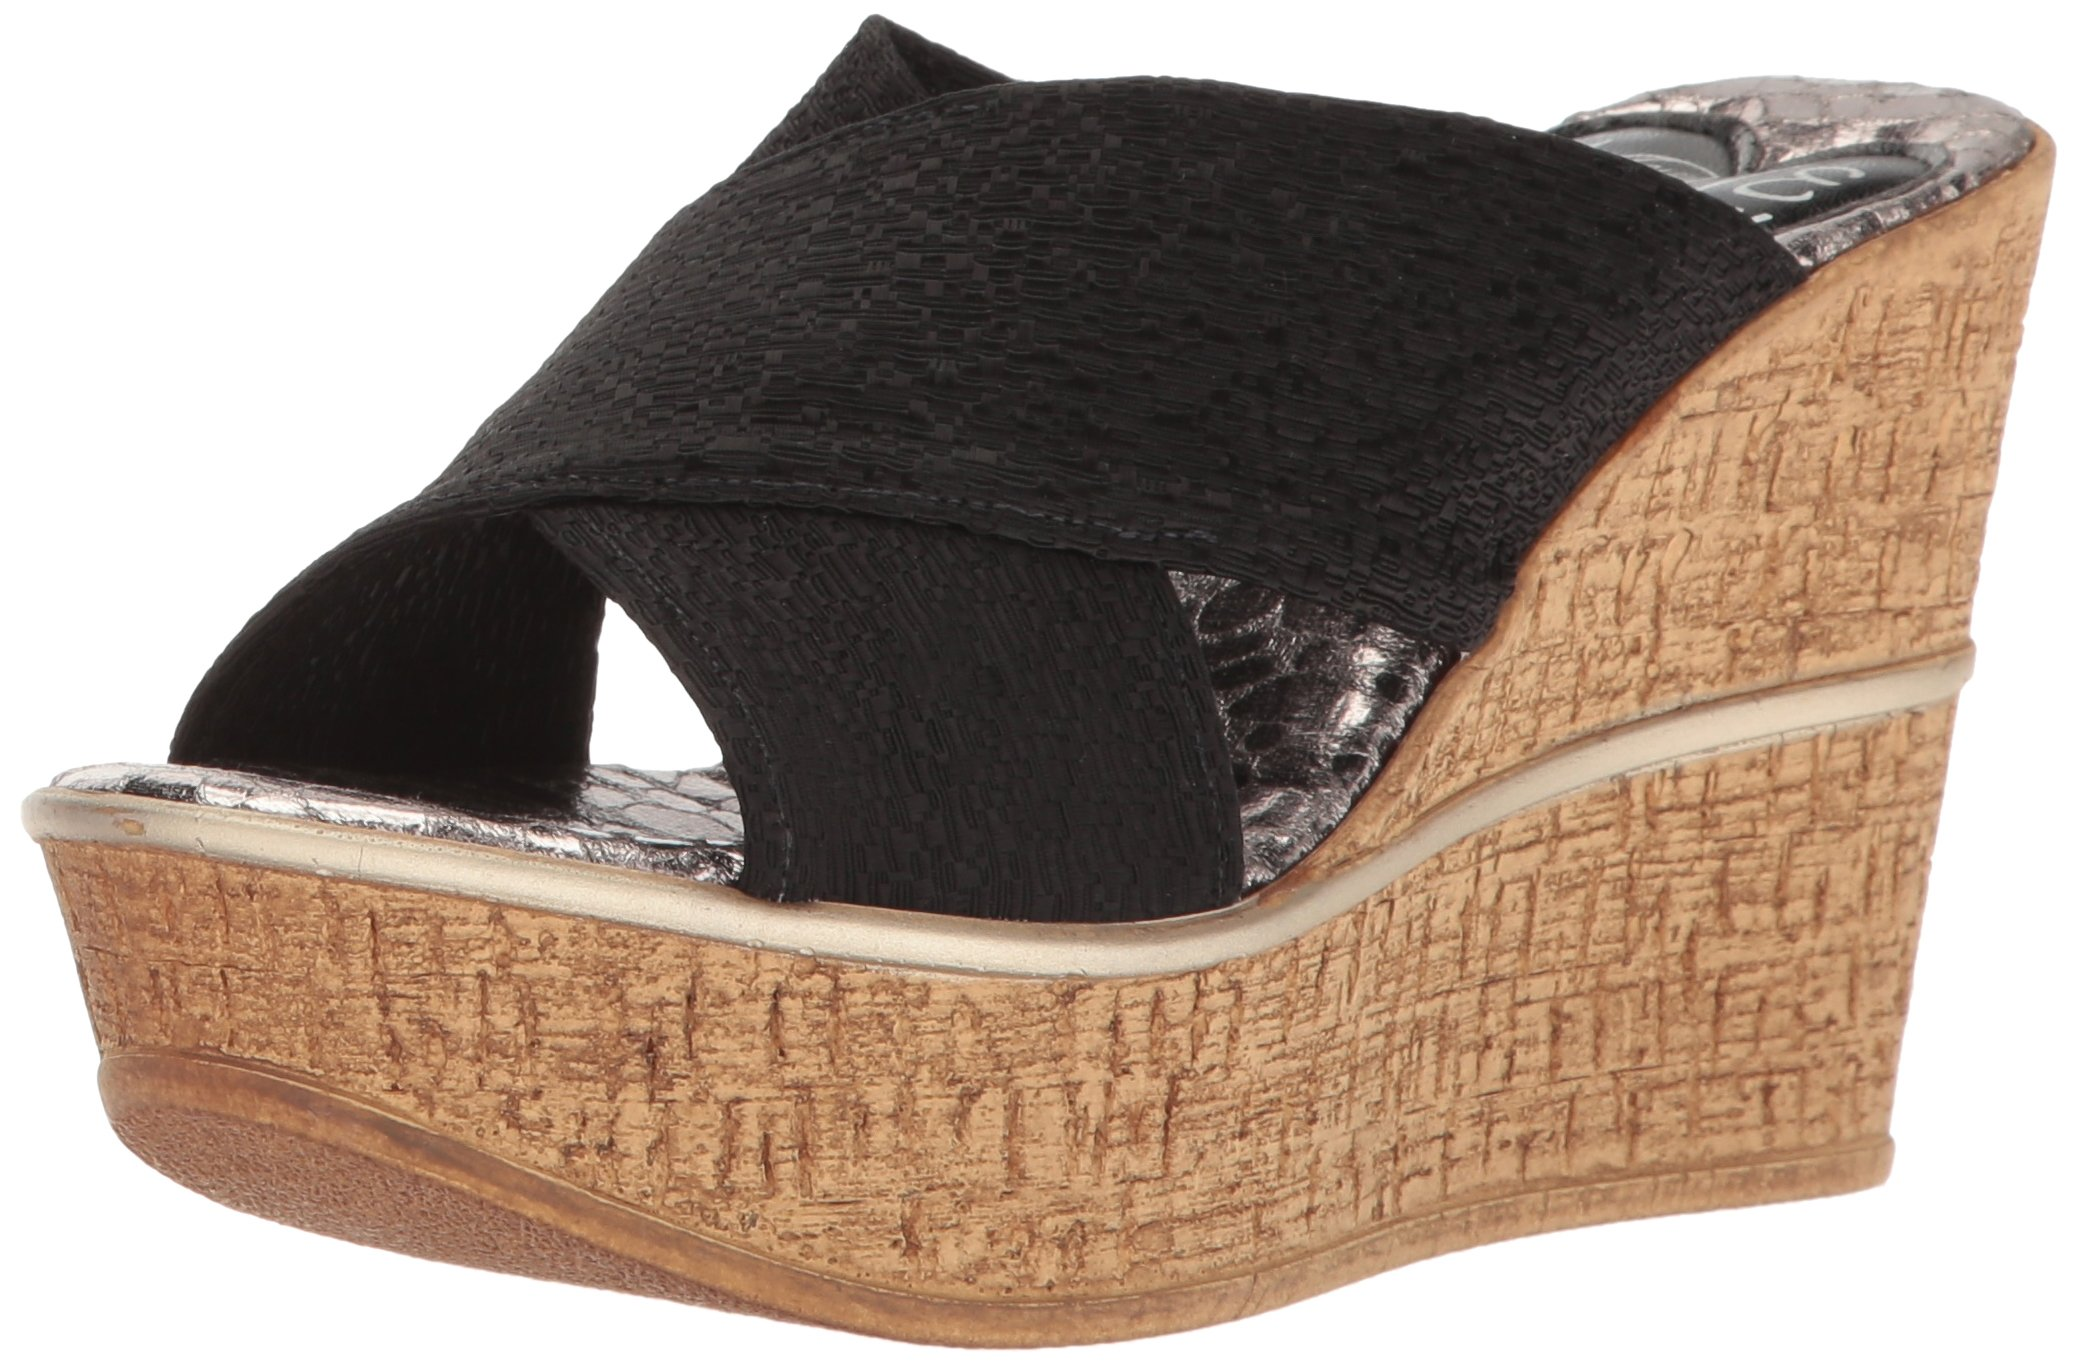 Love & Liberty Women's Ruth-LL Wedge Sandal, Black, 8 M US